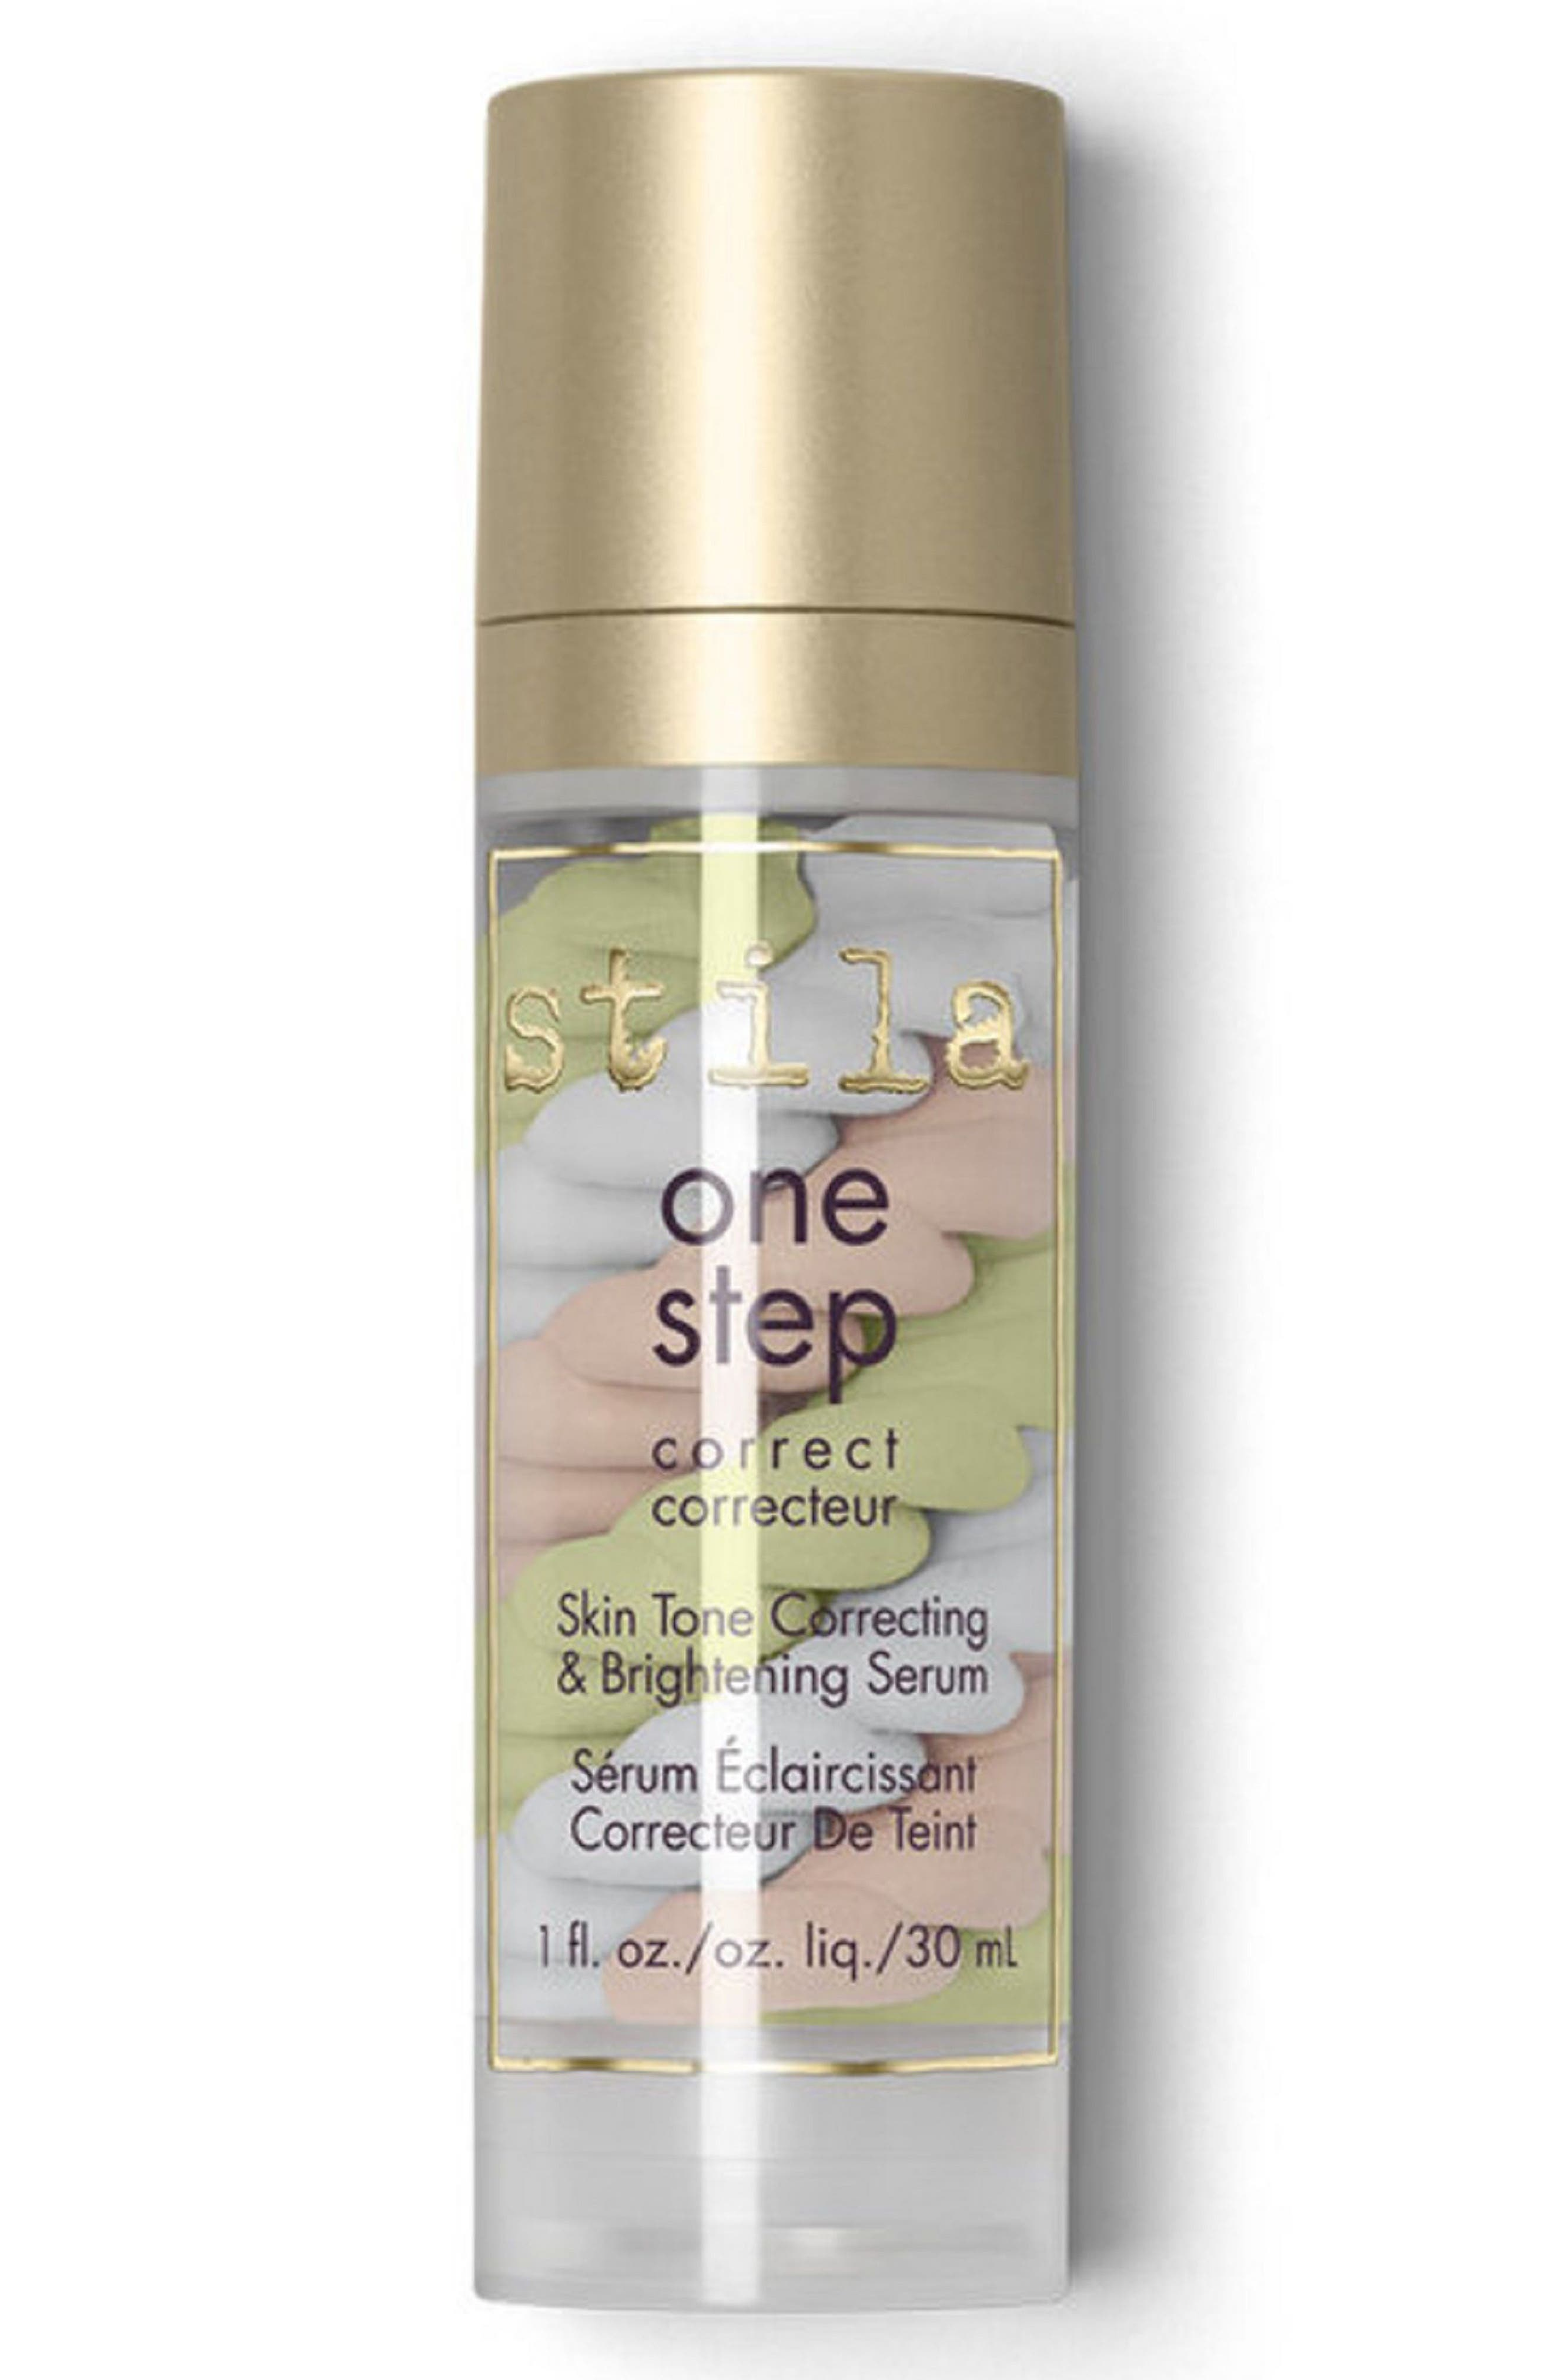 One Step Correct Skin Tone Correcting Brightening Serum,                         Main,                         color, No Color